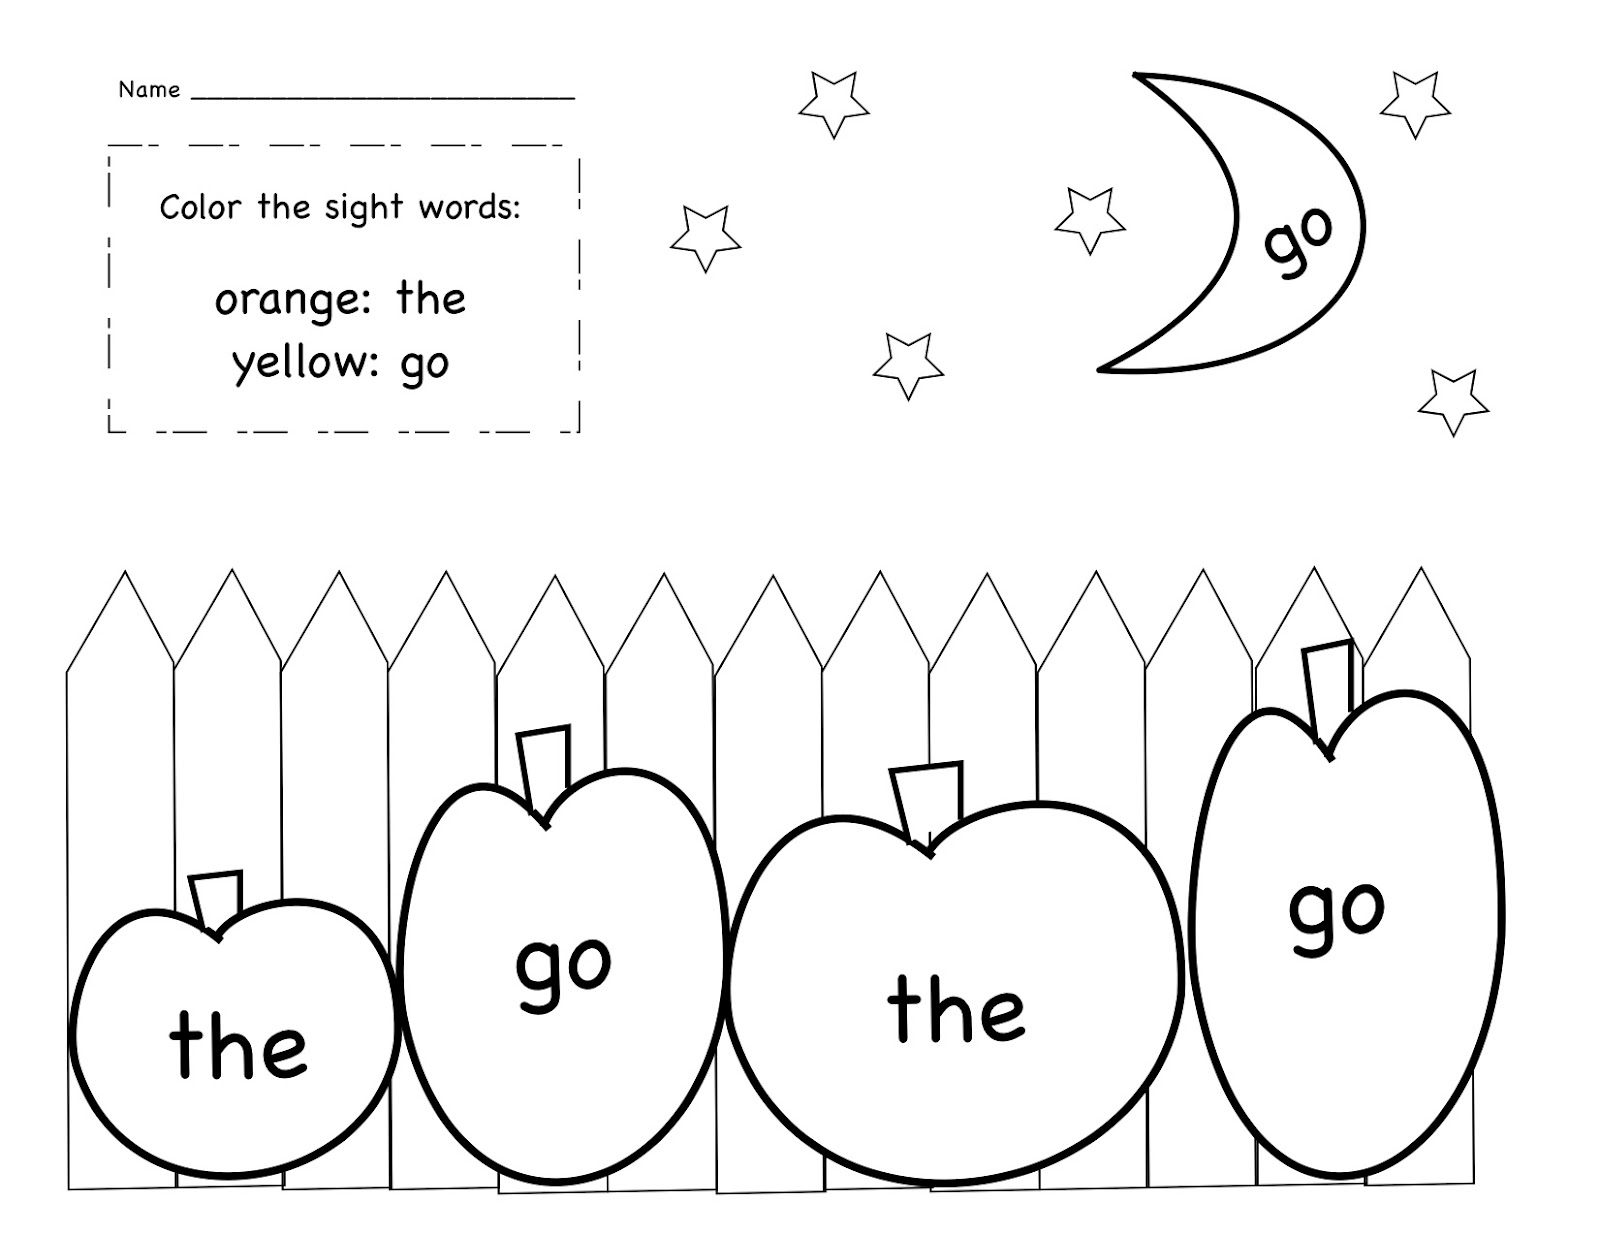 Words word Sight sight for Results worksheets uk Coloring Sheets.